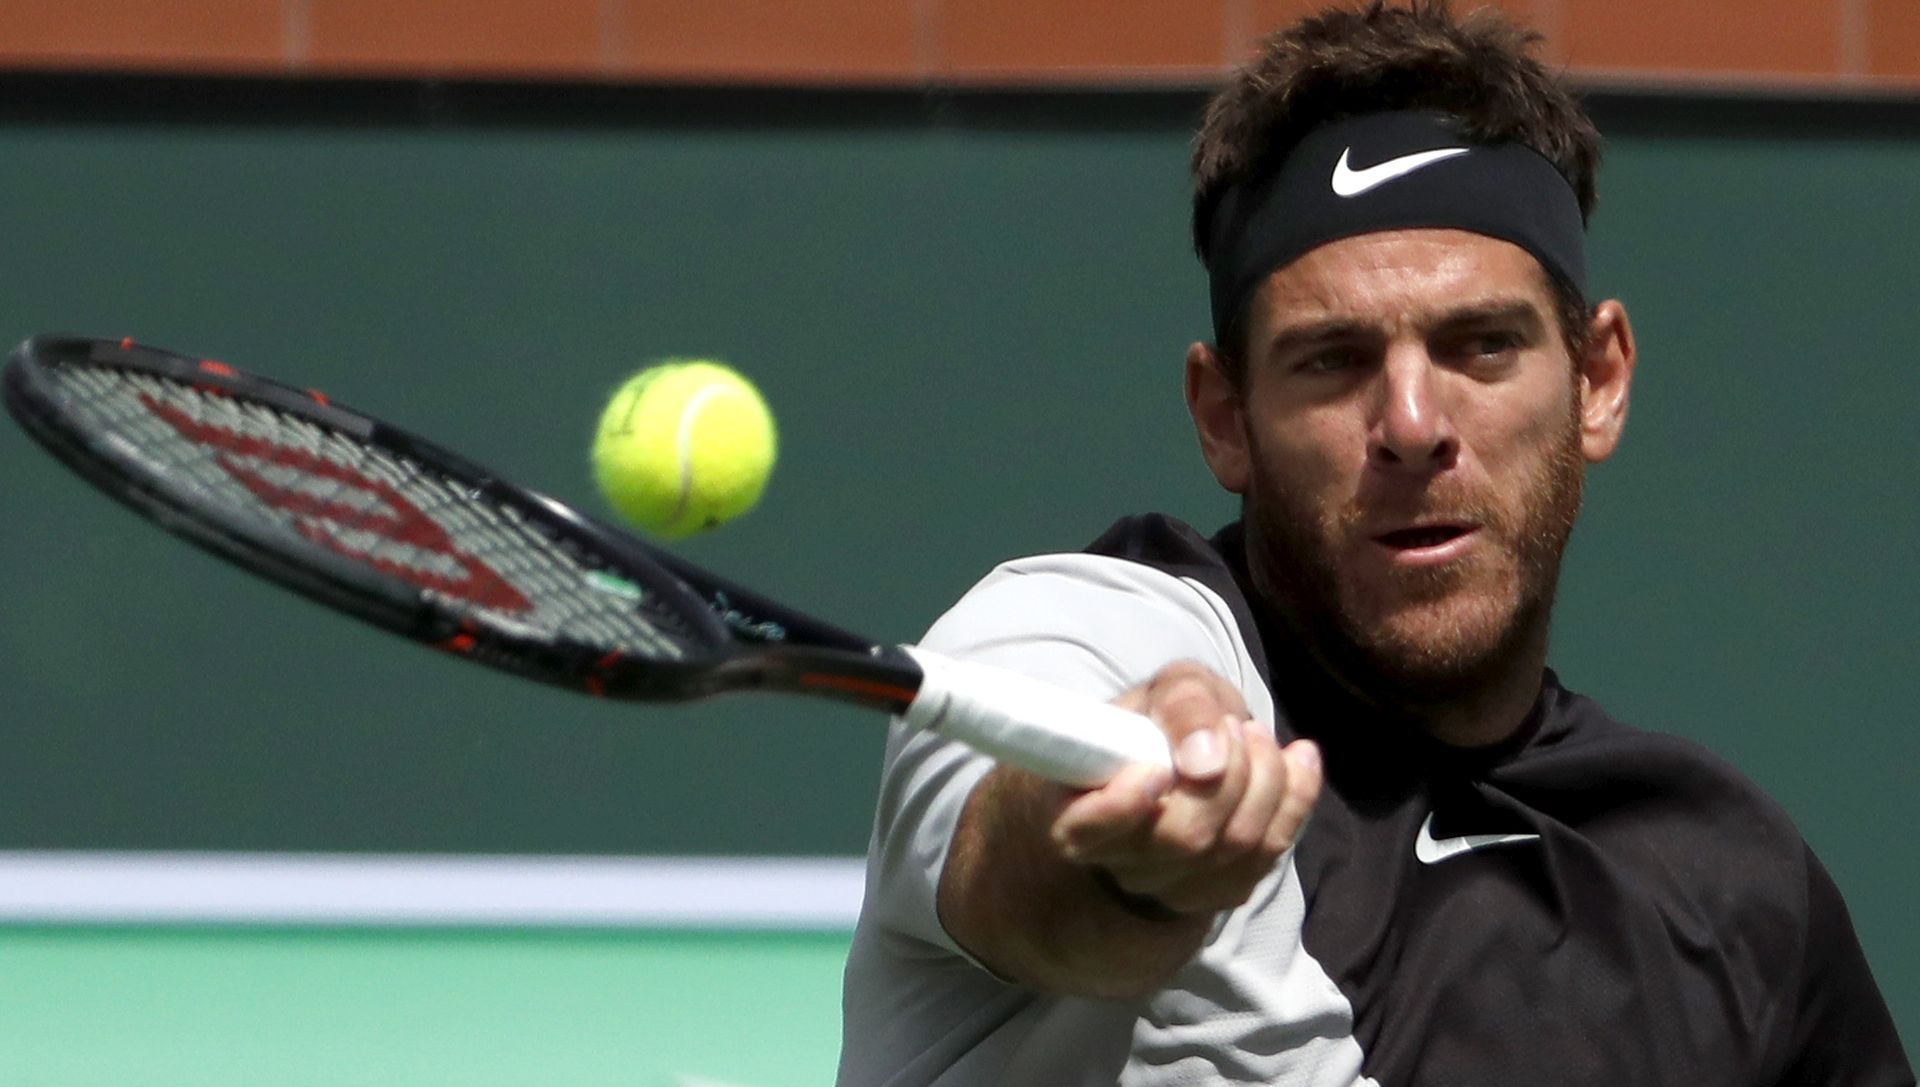 Del Potro preko Federera do naslova u Indian Wellsu